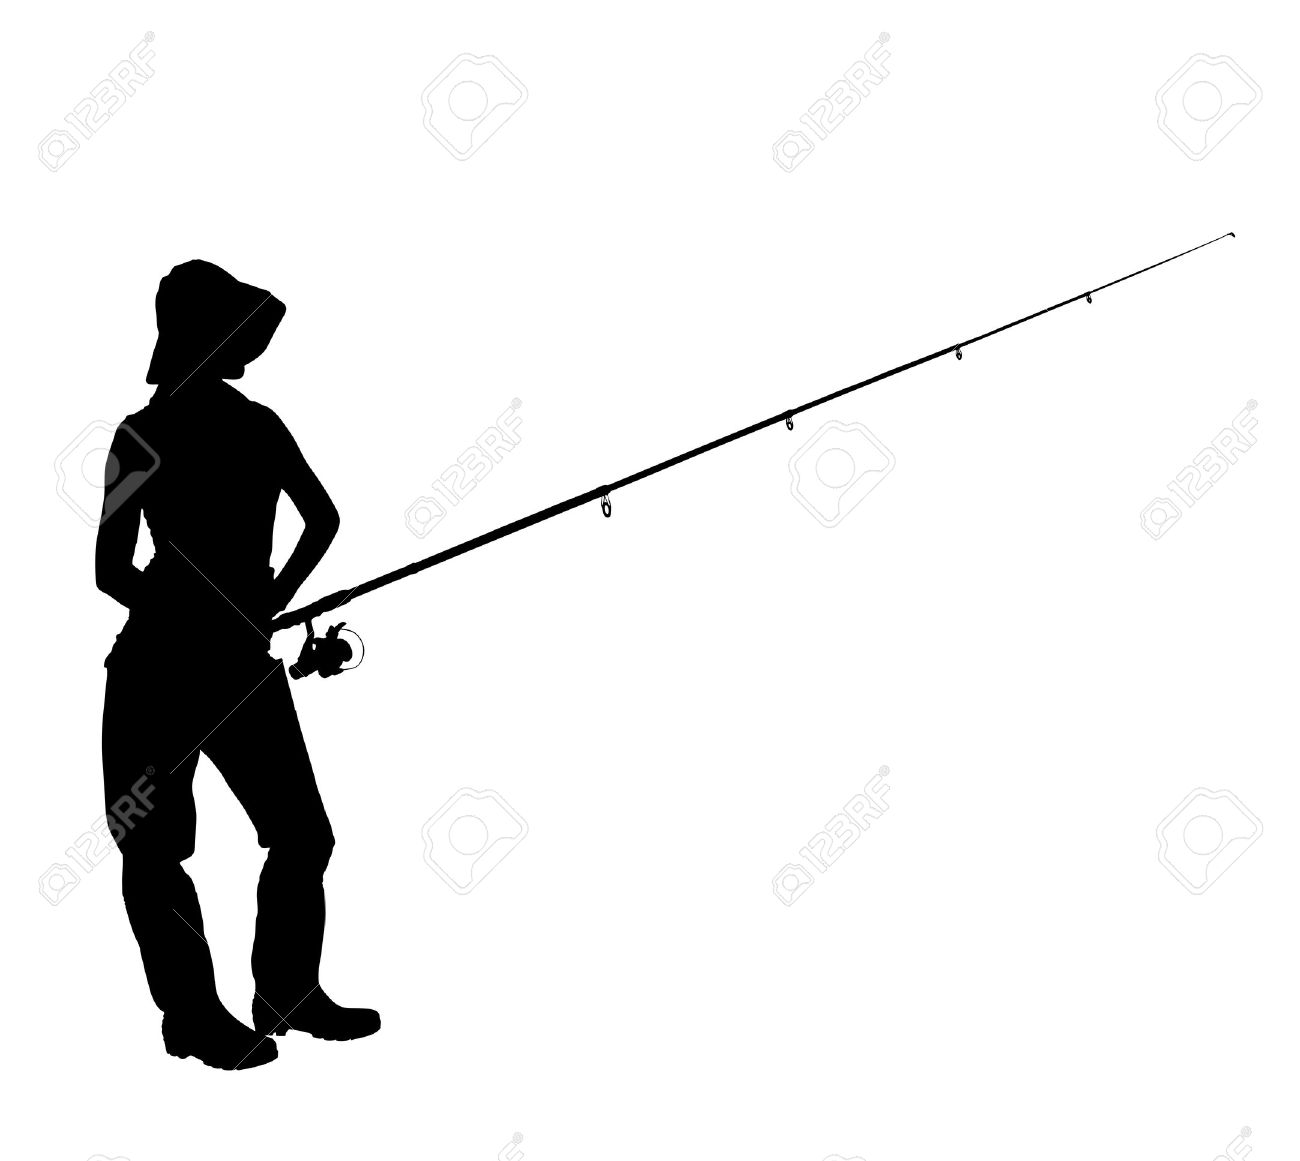 A silhouette of a fisherwoman holding a fishing pole isolated on white background Stock Photo - 10765221